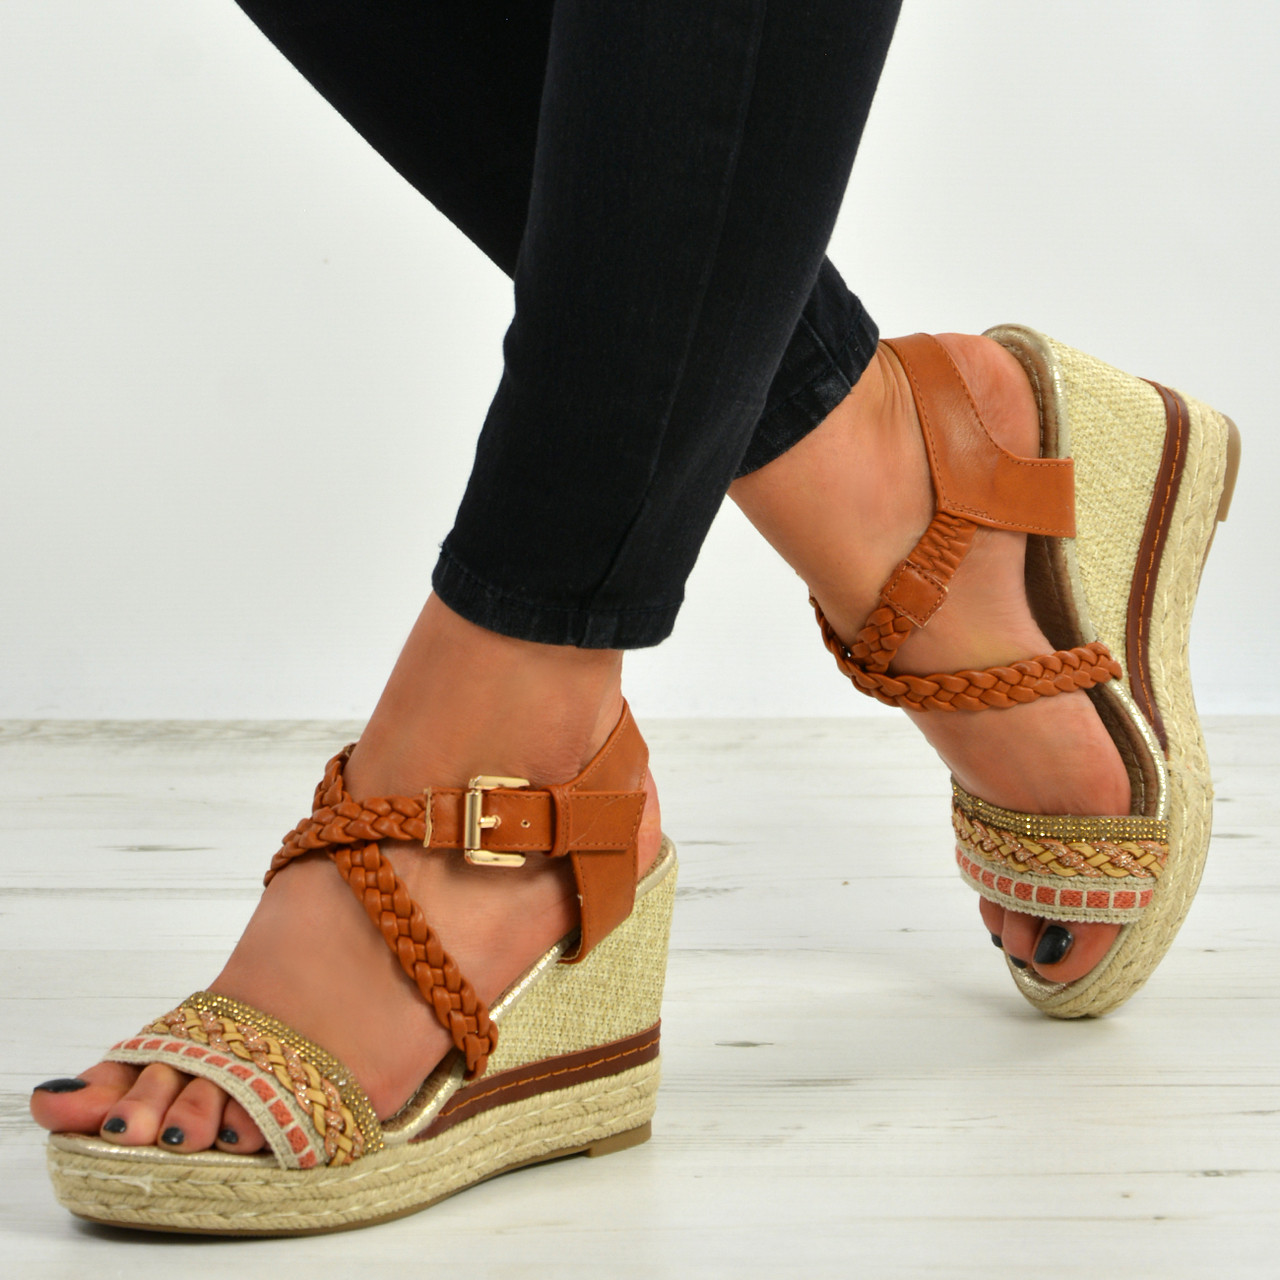 e66f582e7c7 New Womens Ladies Ankle Strap Peep Toe Espadrille Wedge Platforms Shoes  Size Uk